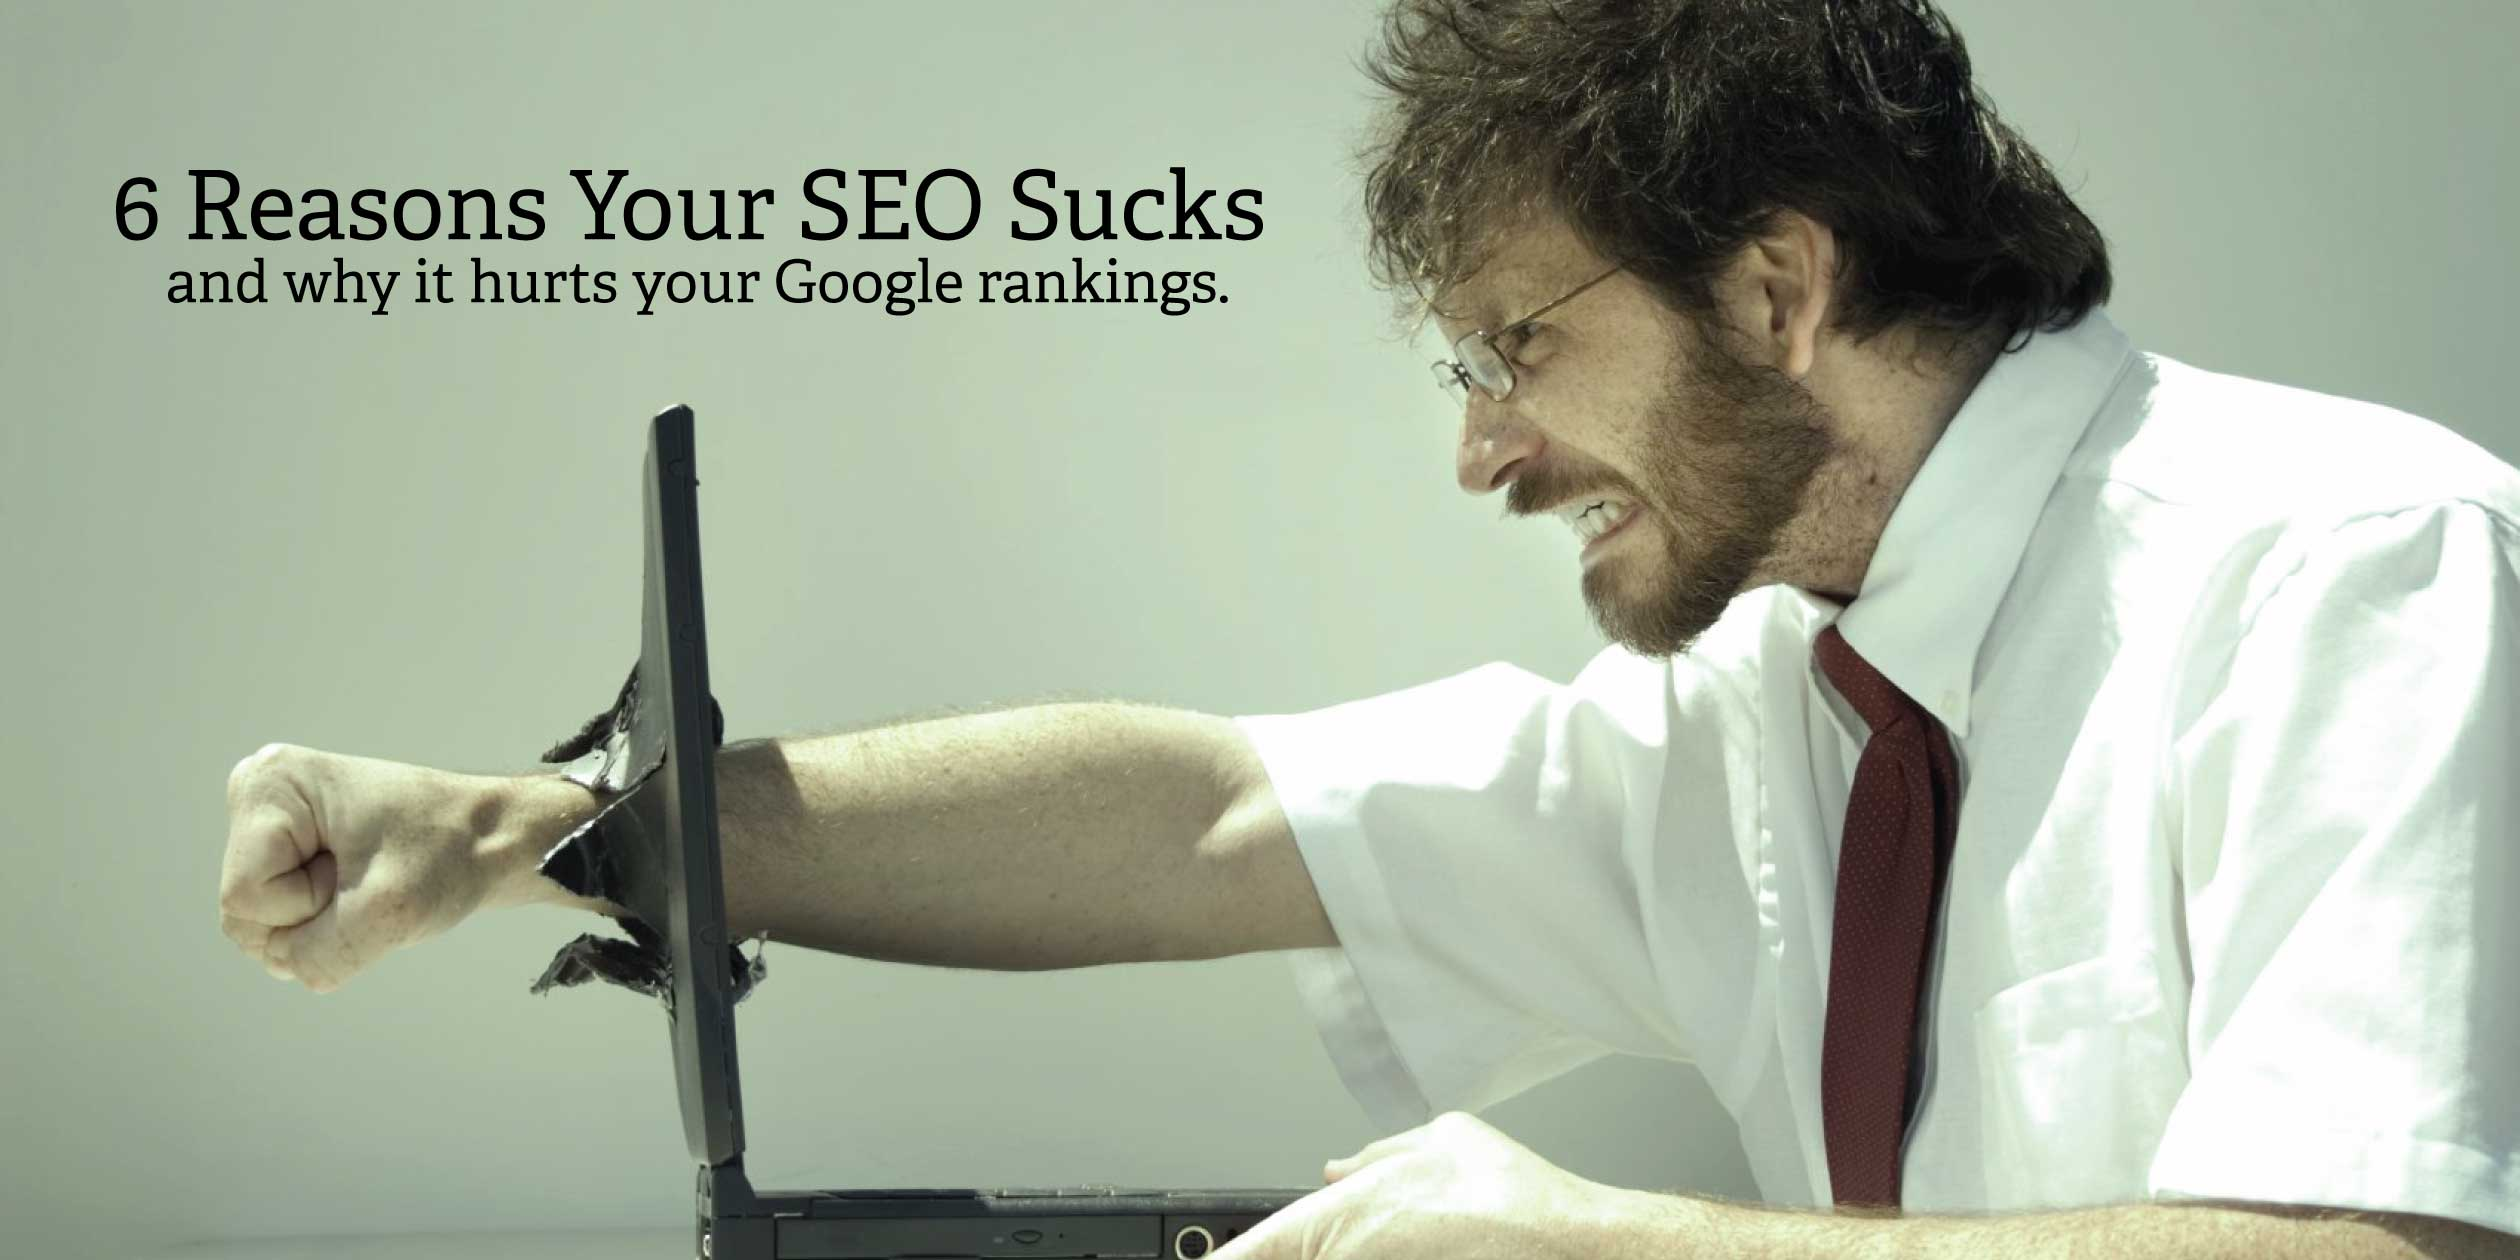 Reasons Why Your SEO Sucks